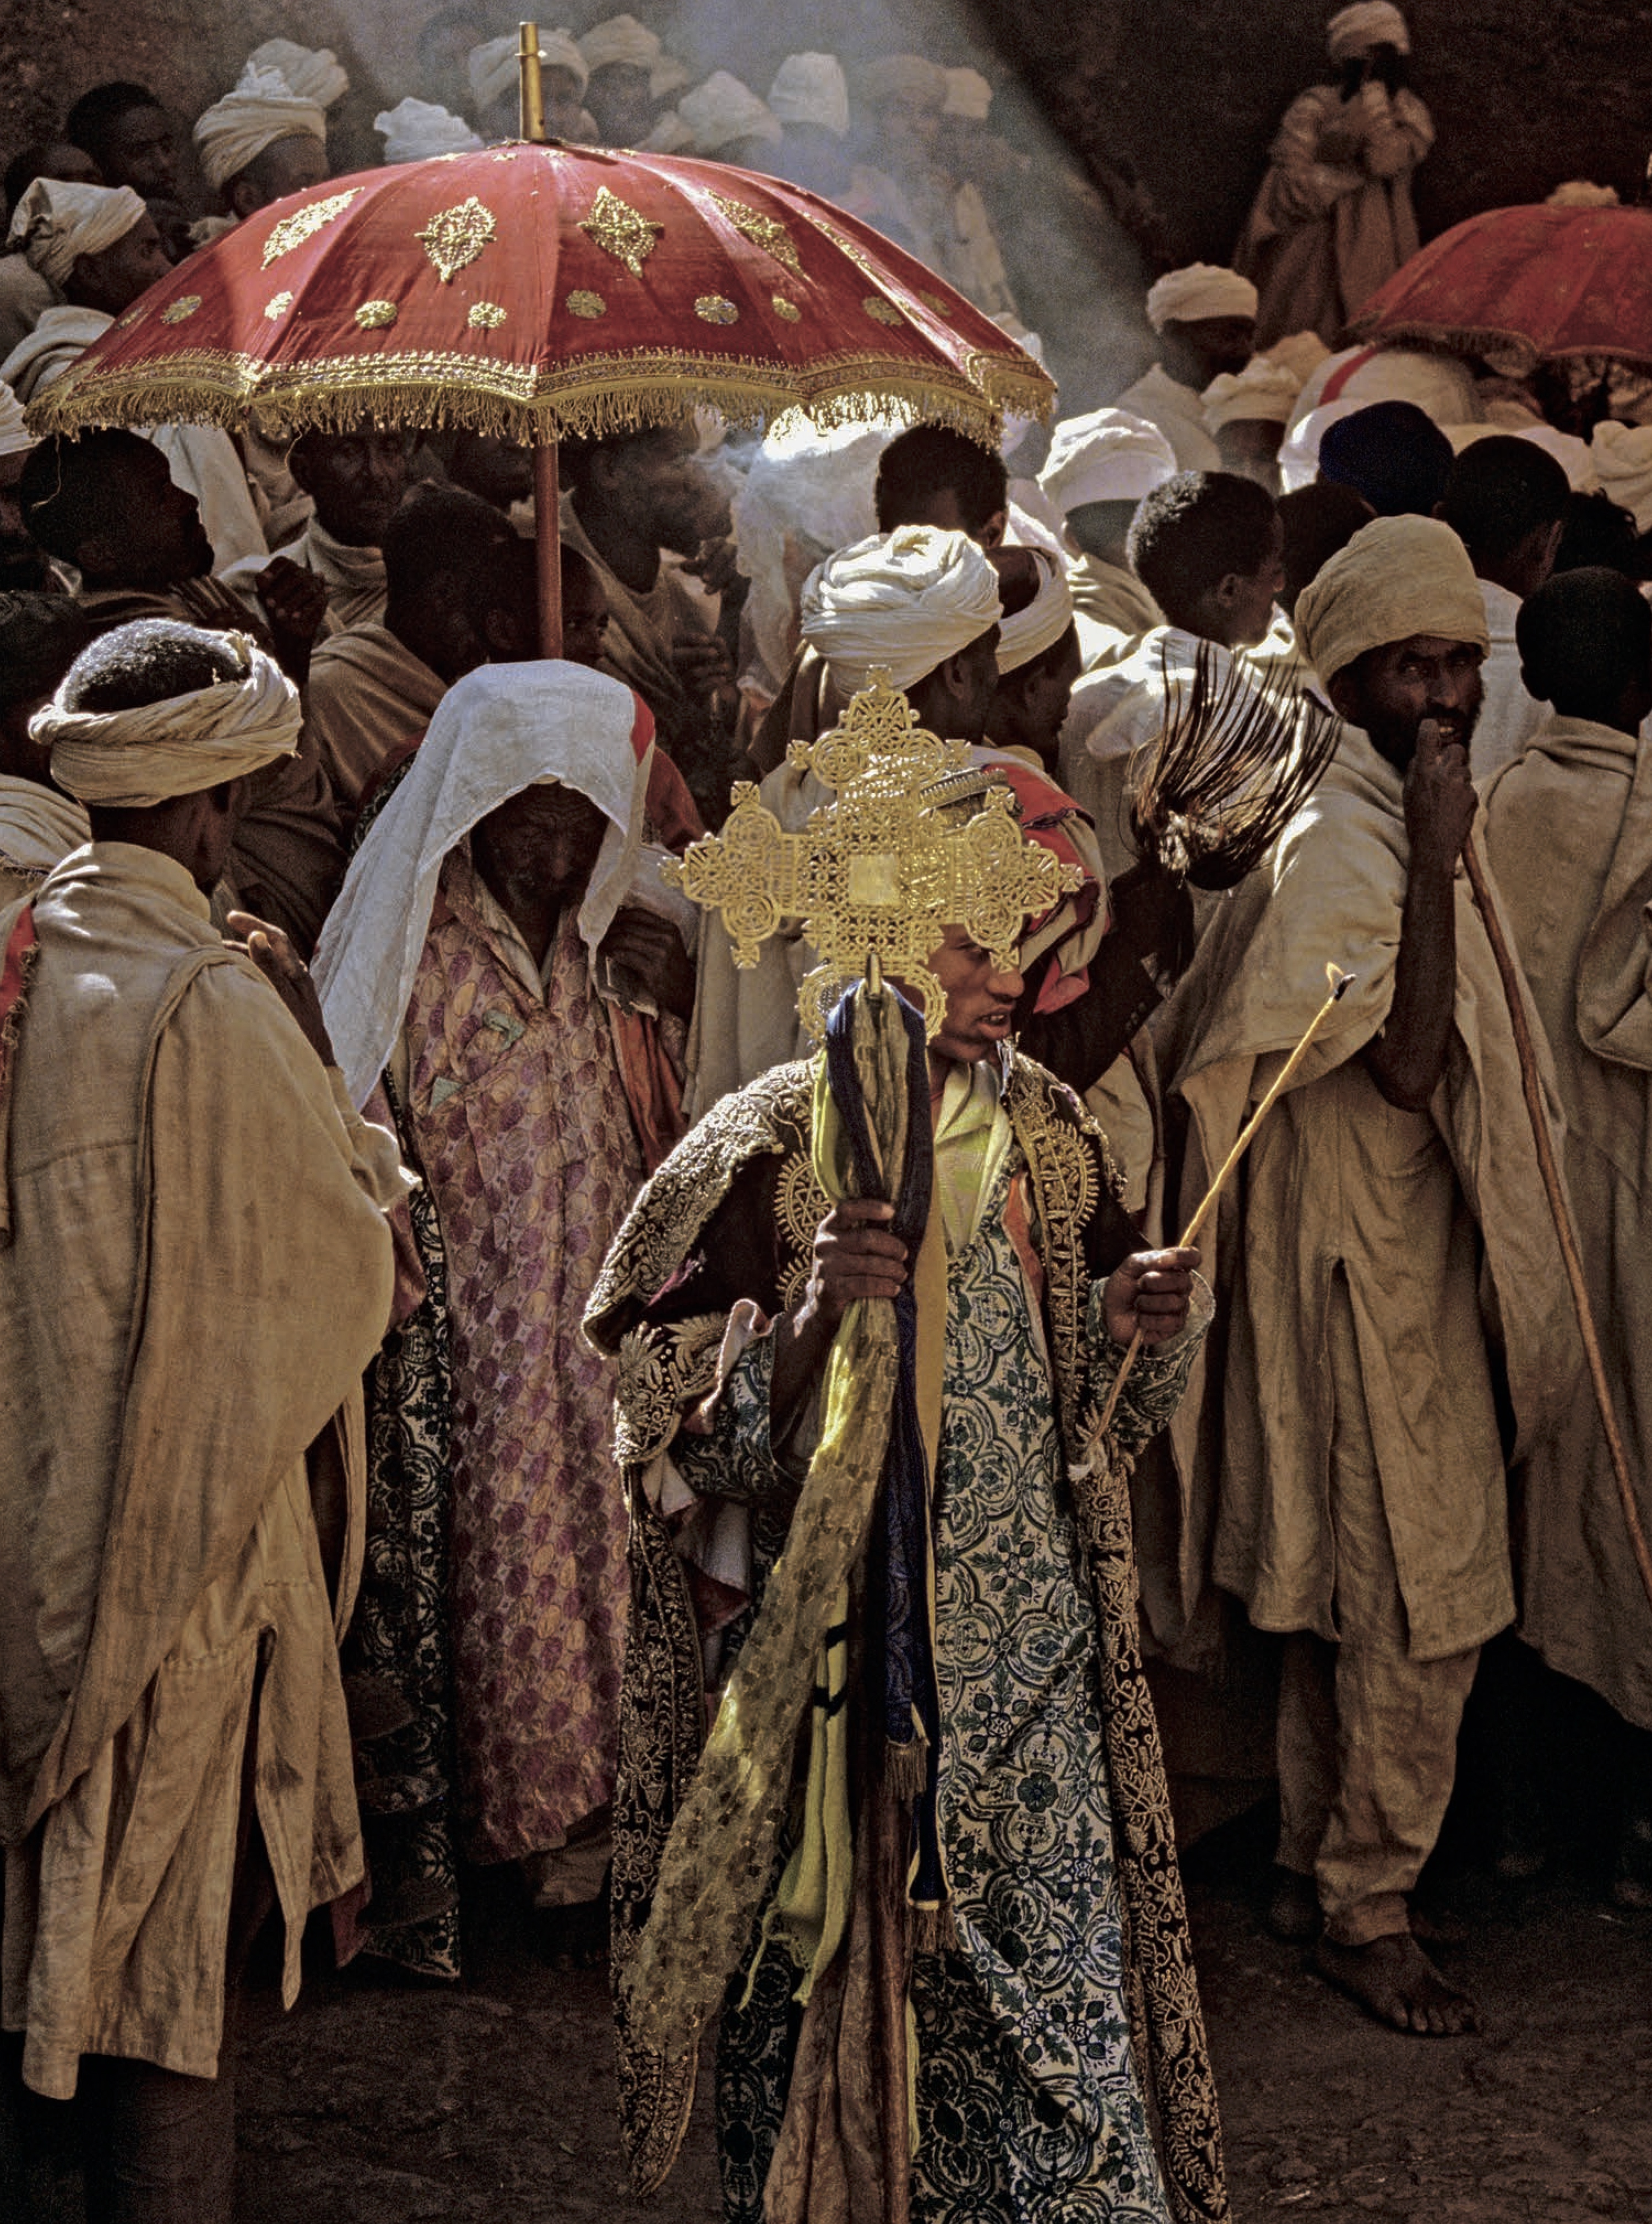 In this celebration at Lalibela, the tabots, covered in rich cloth and carried on the heads of priests, are taken out from all the churches and accompanied in a procession of priests, monks, deacons, debtaras, and pilgrims to where they will rest the night in a tent. The priests fast for eighteen hours before carrying the tabot.